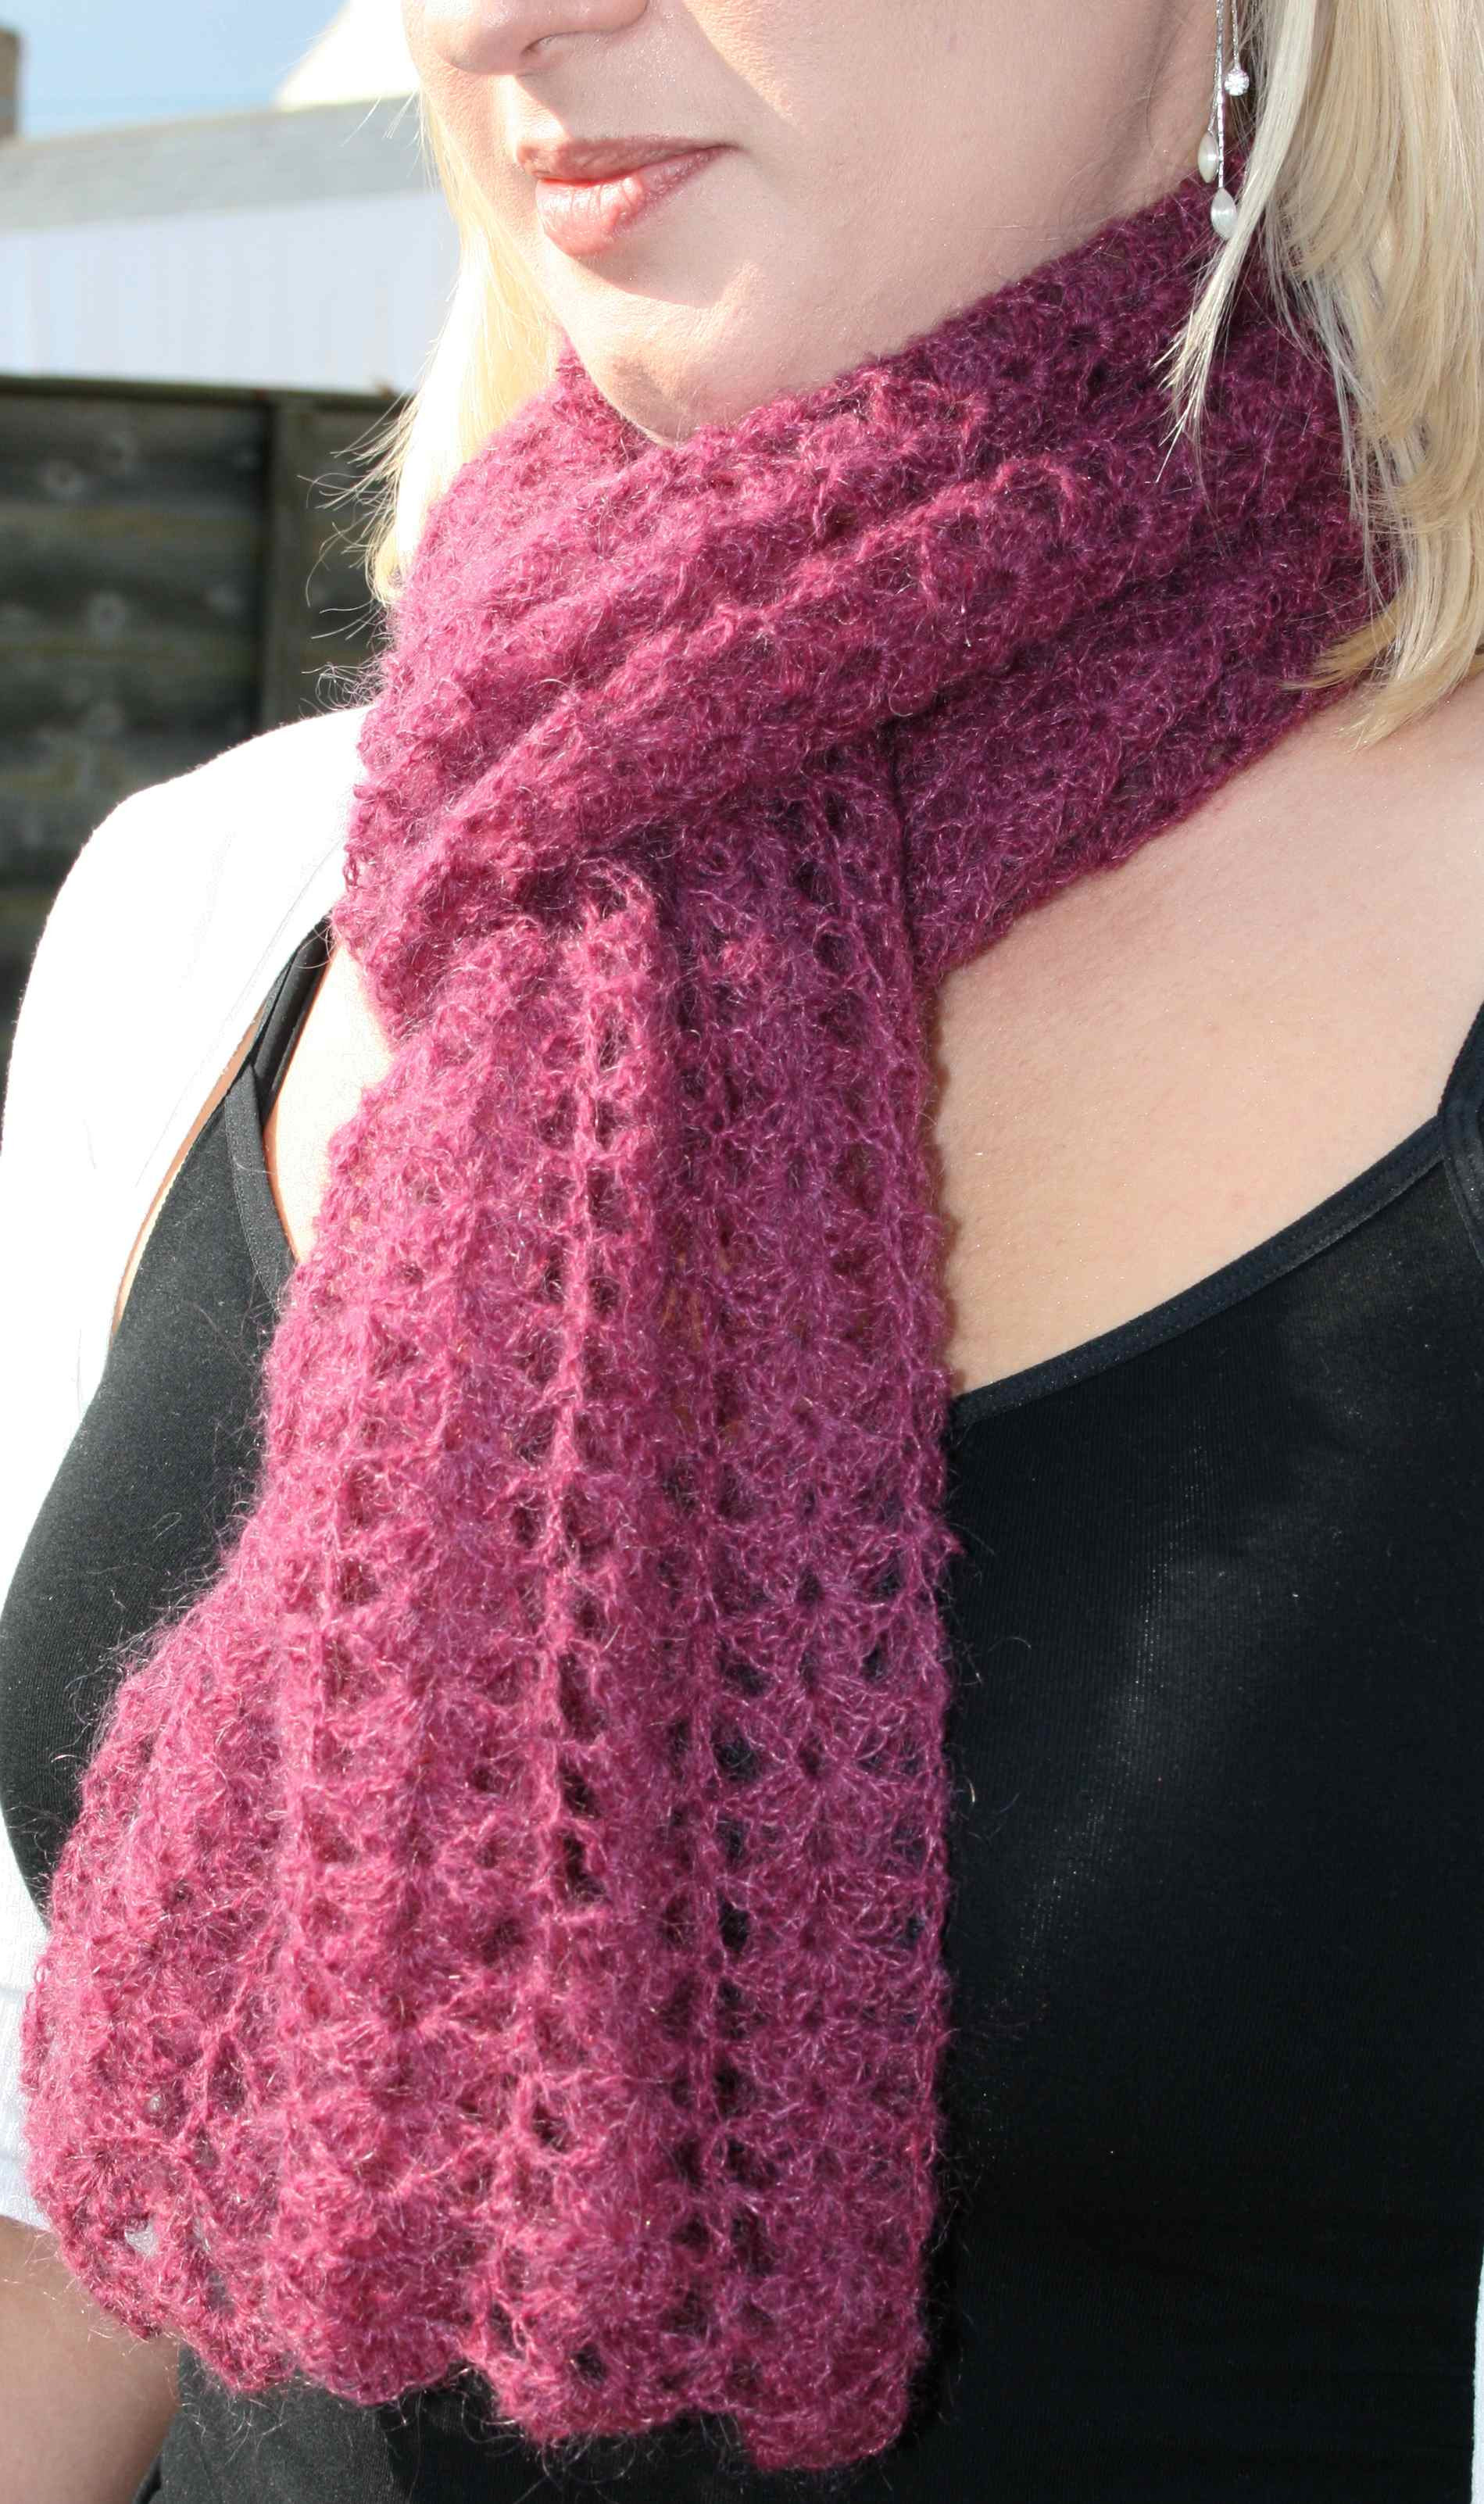 Awesome Free Scarf Crochet Patterns for Beginners Free Crochet Scarf Patterns for Beginners Of Gorgeous 46 Pictures Free Crochet Scarf Patterns for Beginners